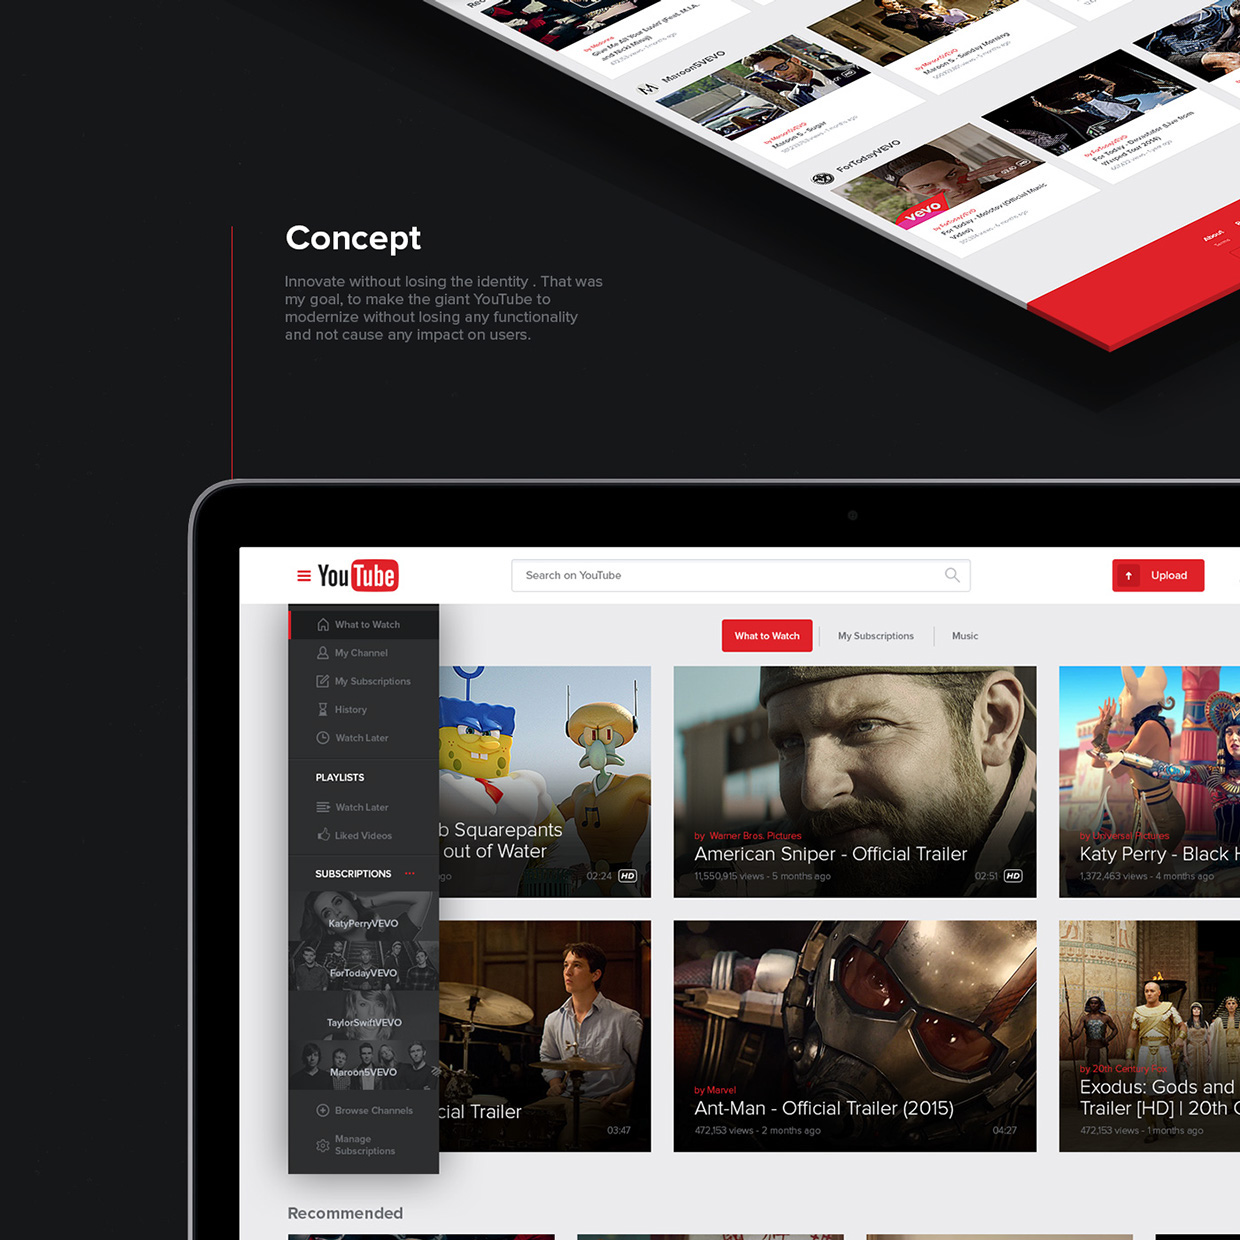 New UX Design Concept of YouTube 2015 By Lucas Nonato (2)